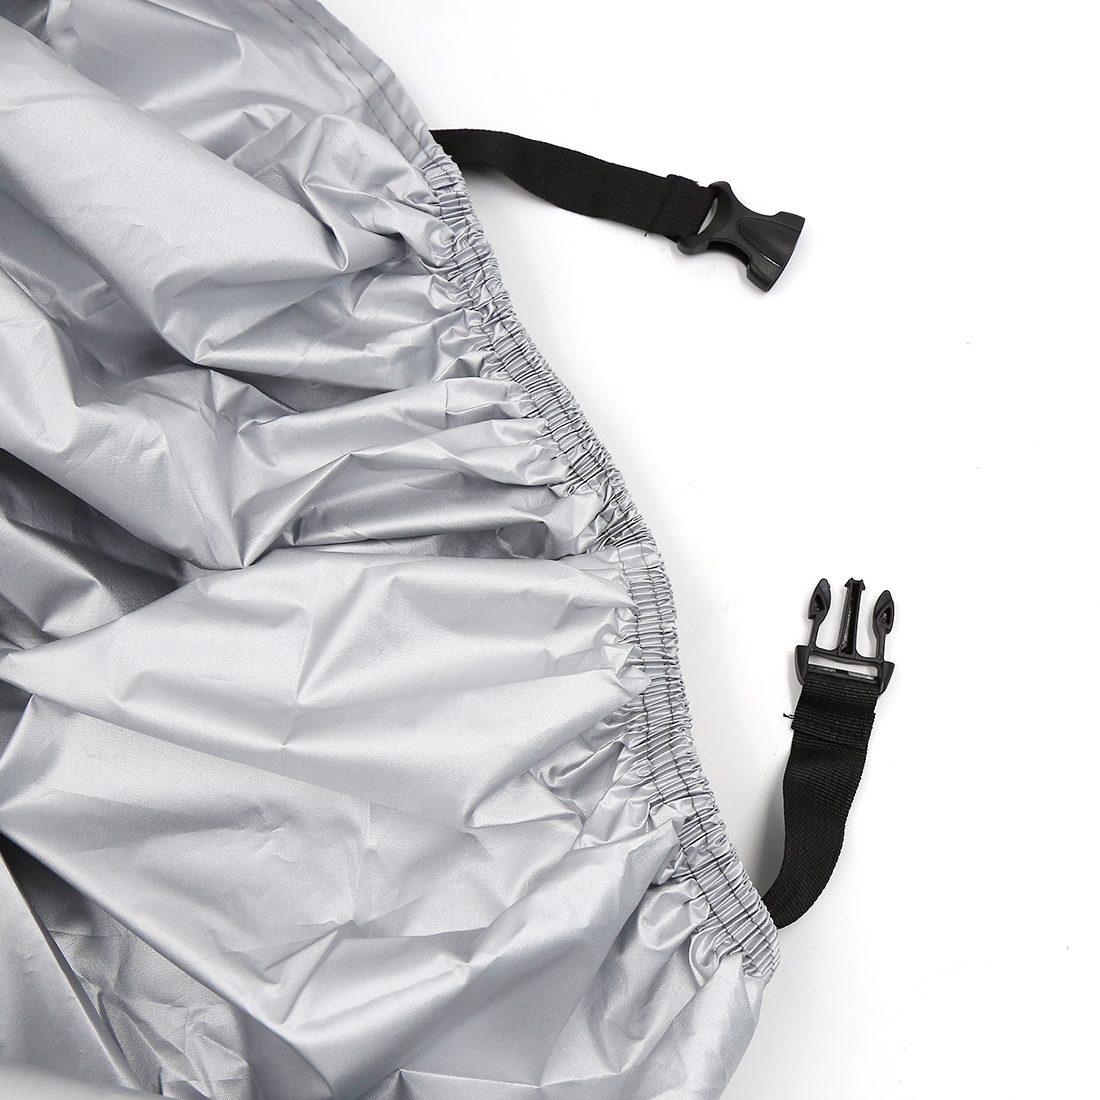 XXL Outdoor Motorcycle Cover For Harley Davidson Dyna Glide Fat Bob Street Bob